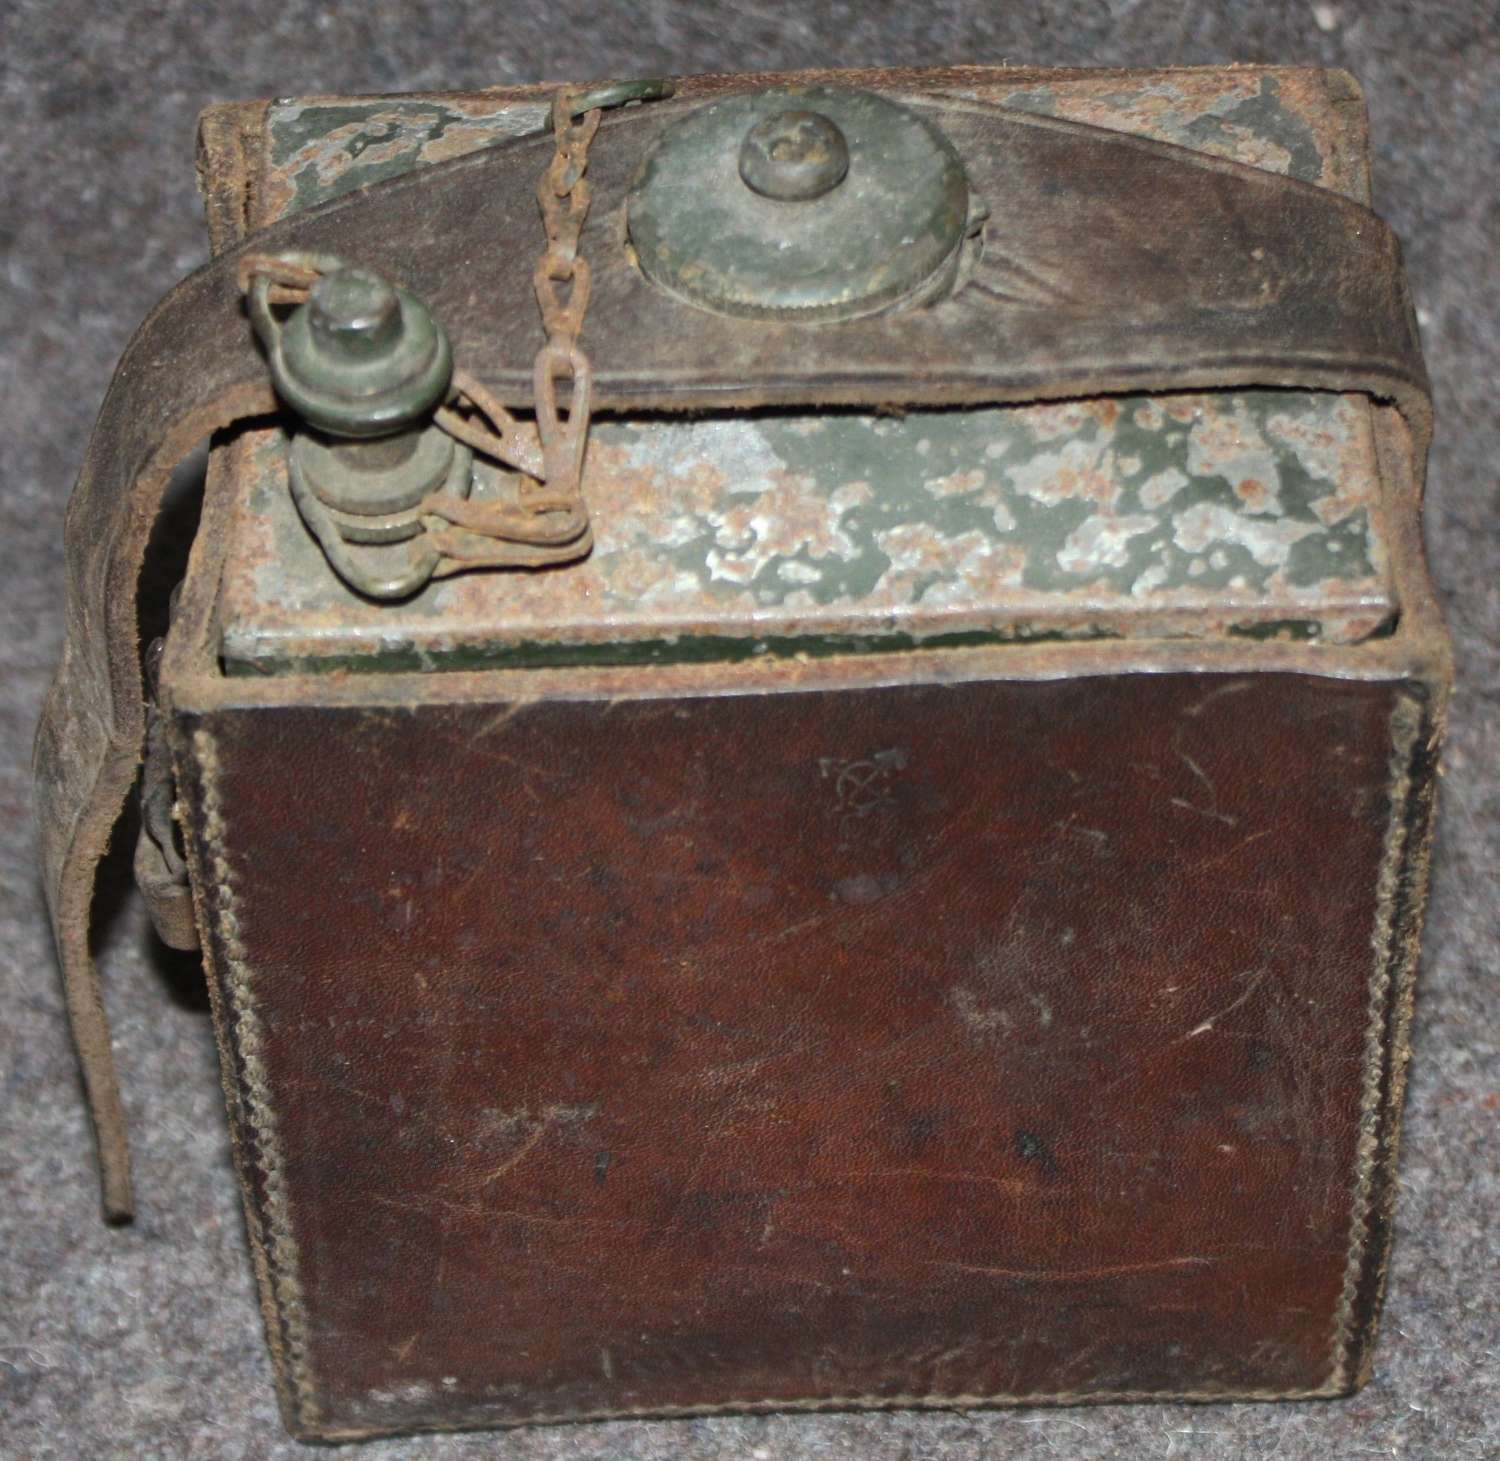 A POST WWI VICKERS MACHINE GUN OIL CAN